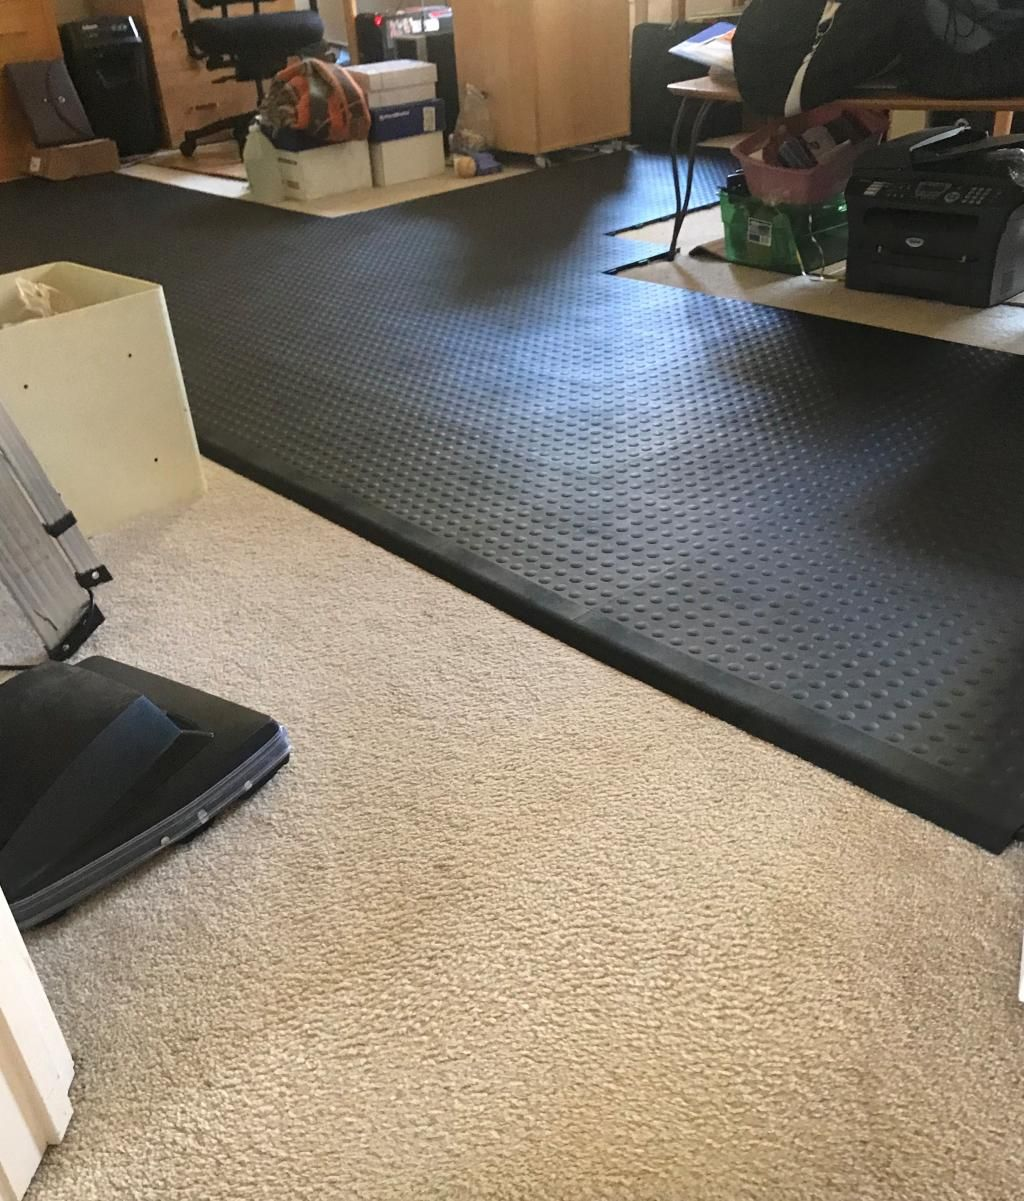 StayLock Tile Bump Top Black Home gym flooring, At home